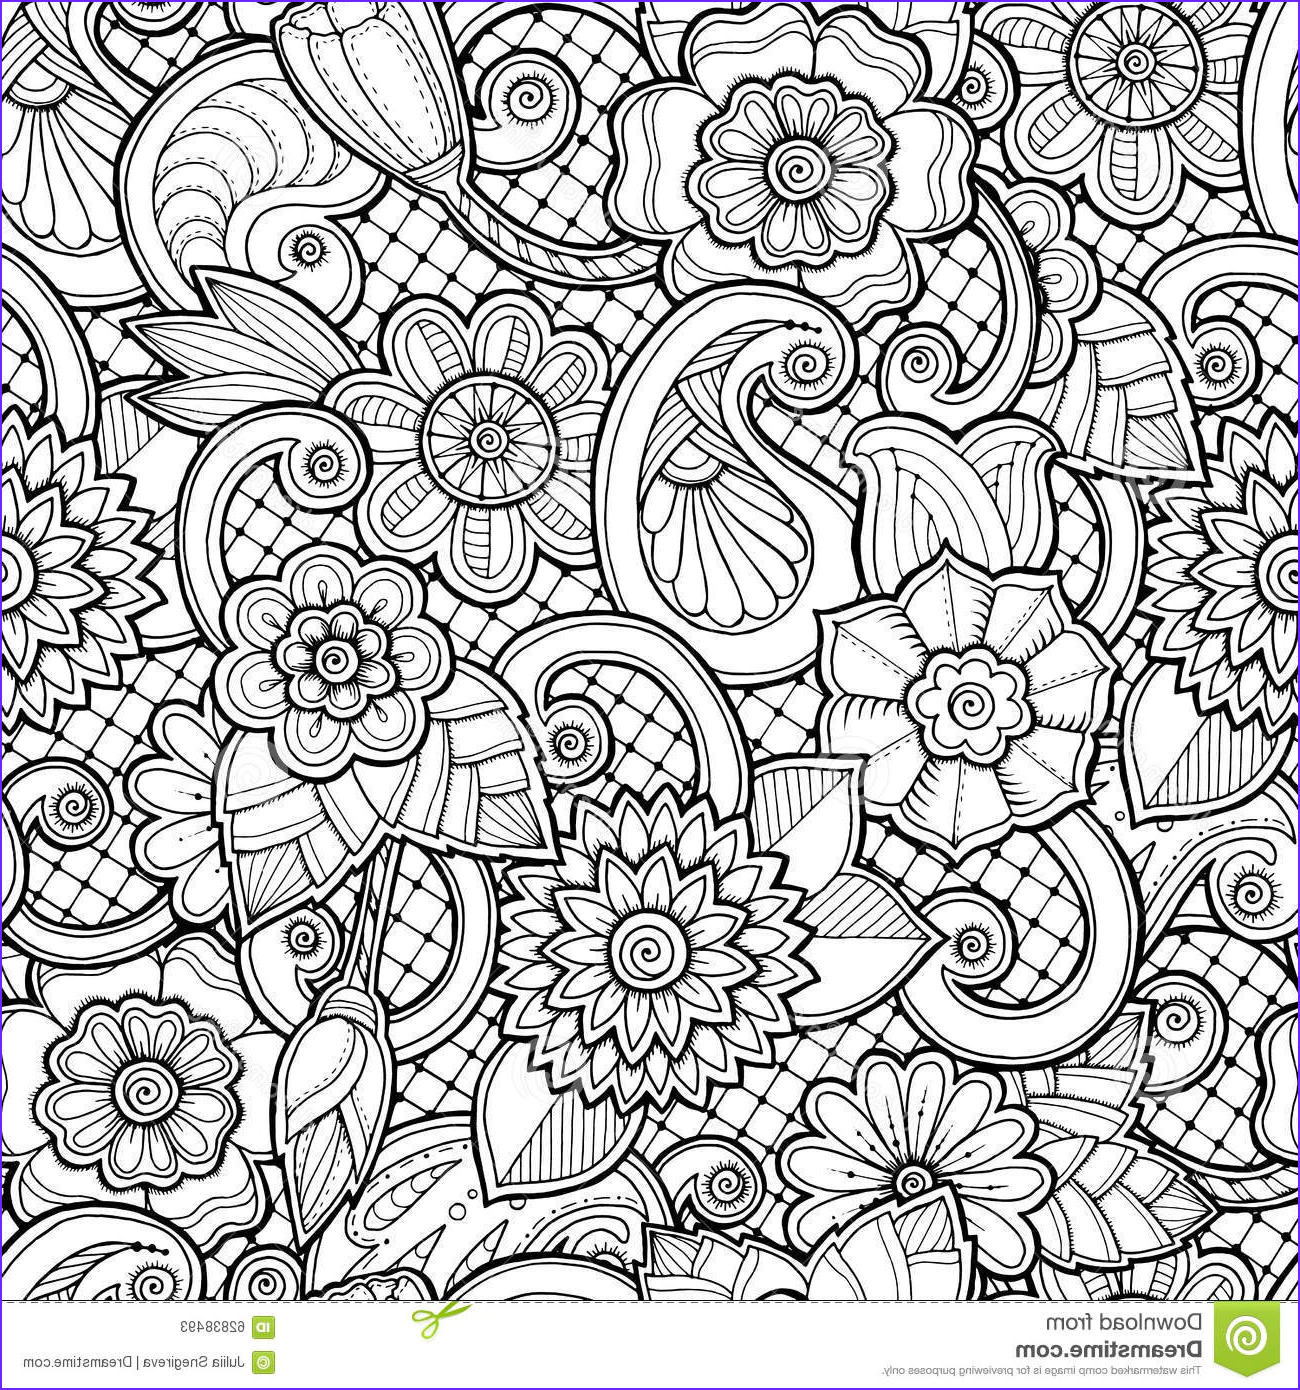 stock illustration seamless background vector doodles flowers paisley doodle ethnic pattern can be used wallpaper pattern image